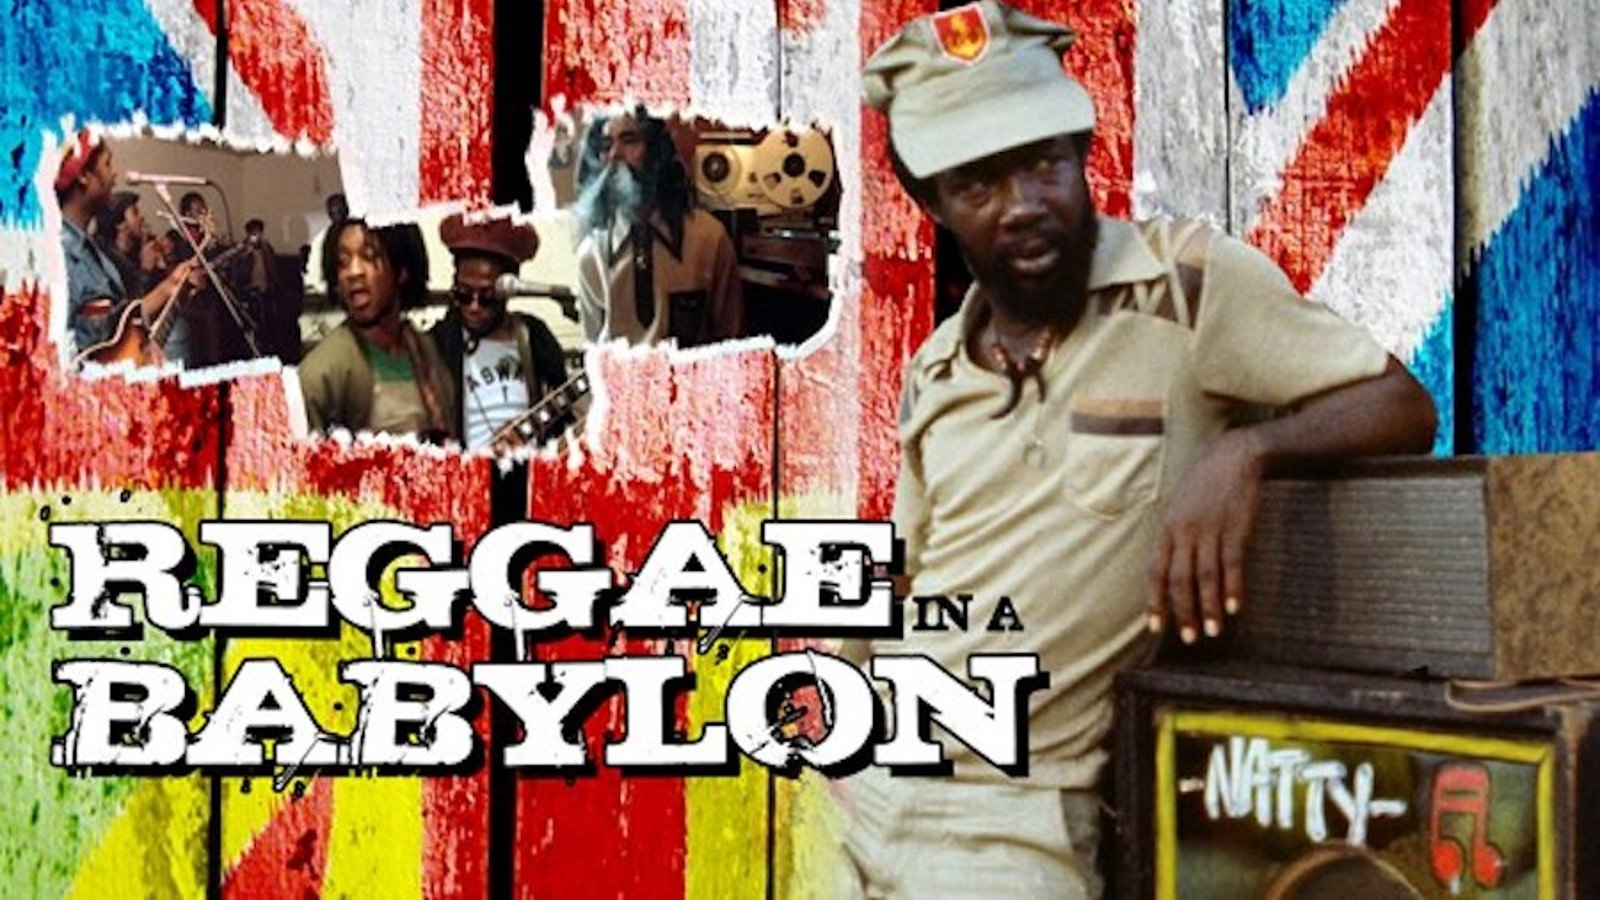 Reggae in a Babylon - The Birth of Urban British Reggae